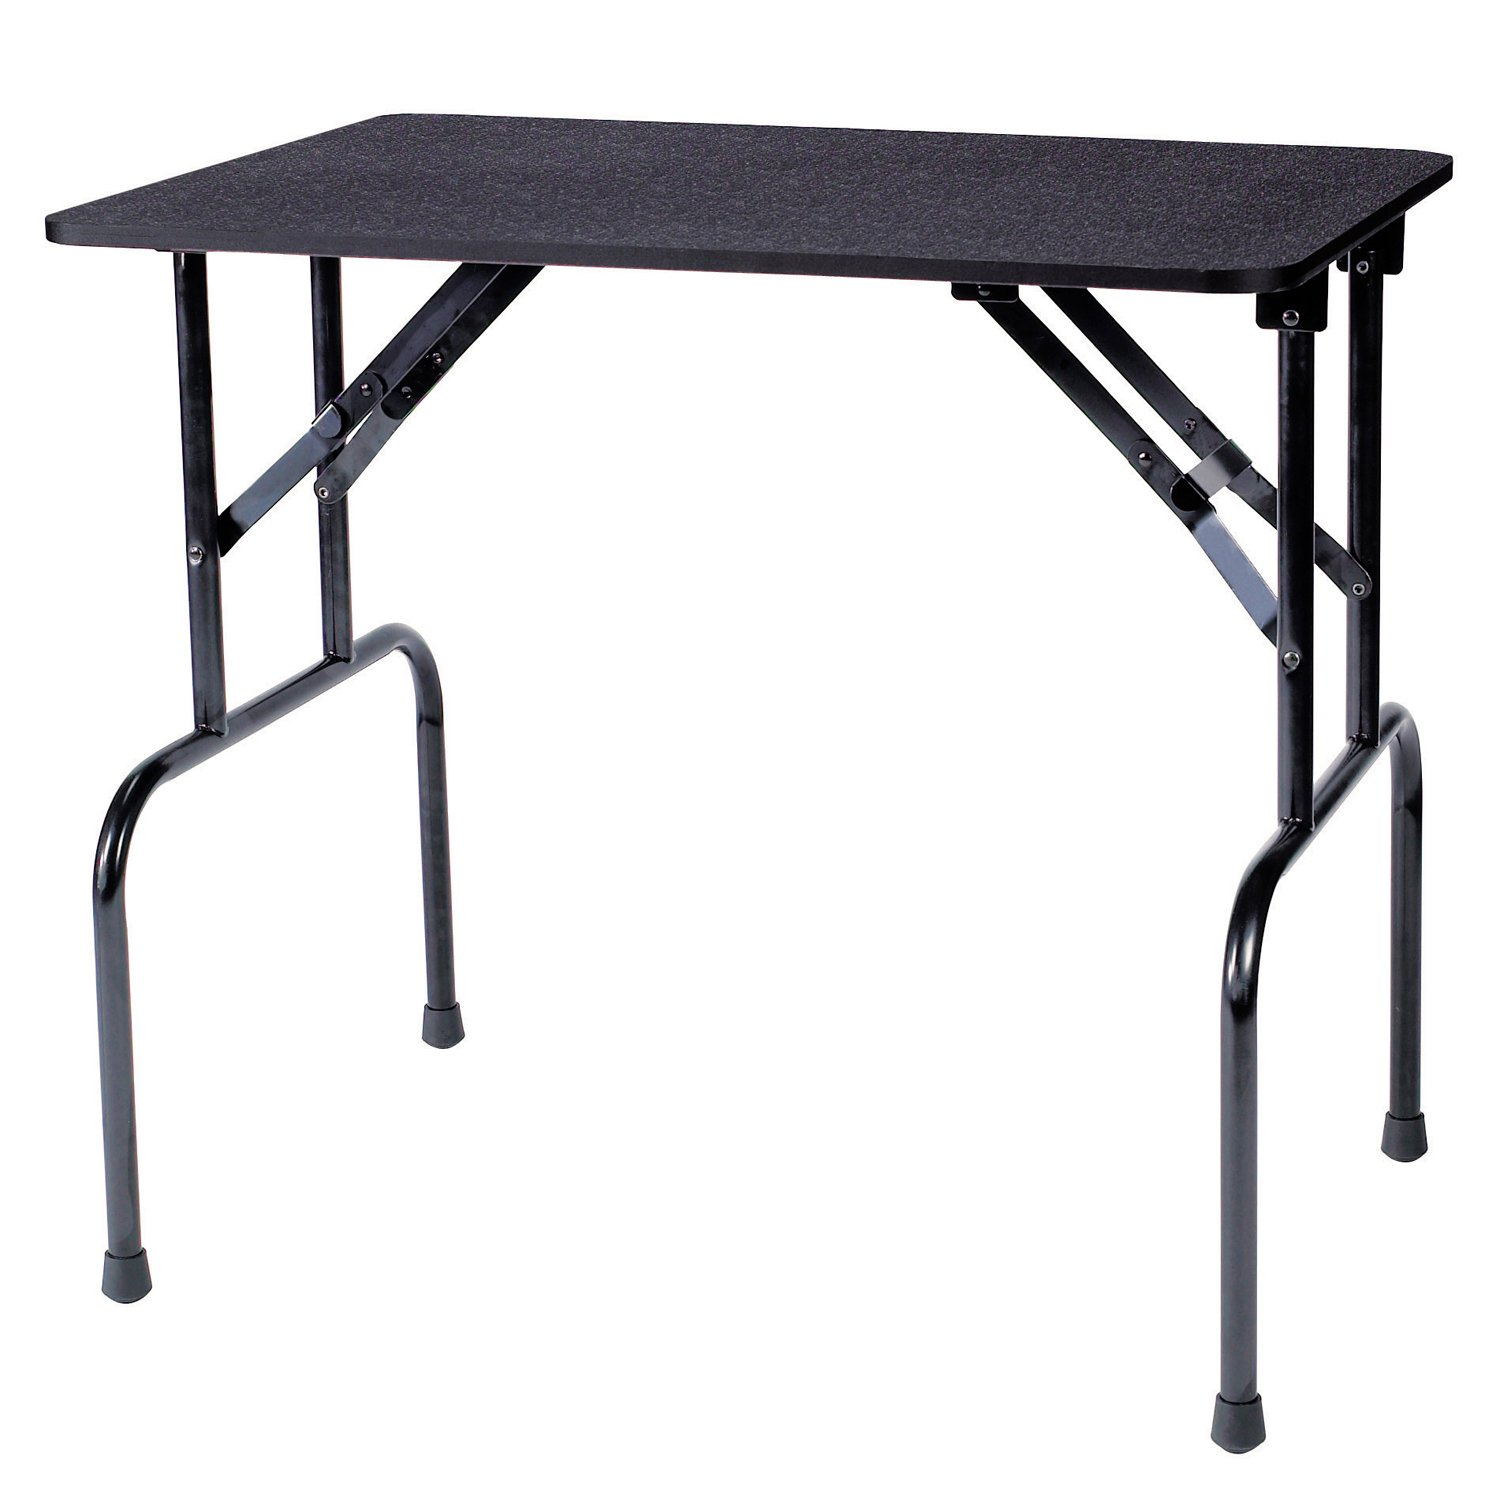 Pet Edge Master Equipment Non-Slip Able Table for Grooming Pets - 30''x18'' Table Top Surface for Pets Up to 130 Pounds